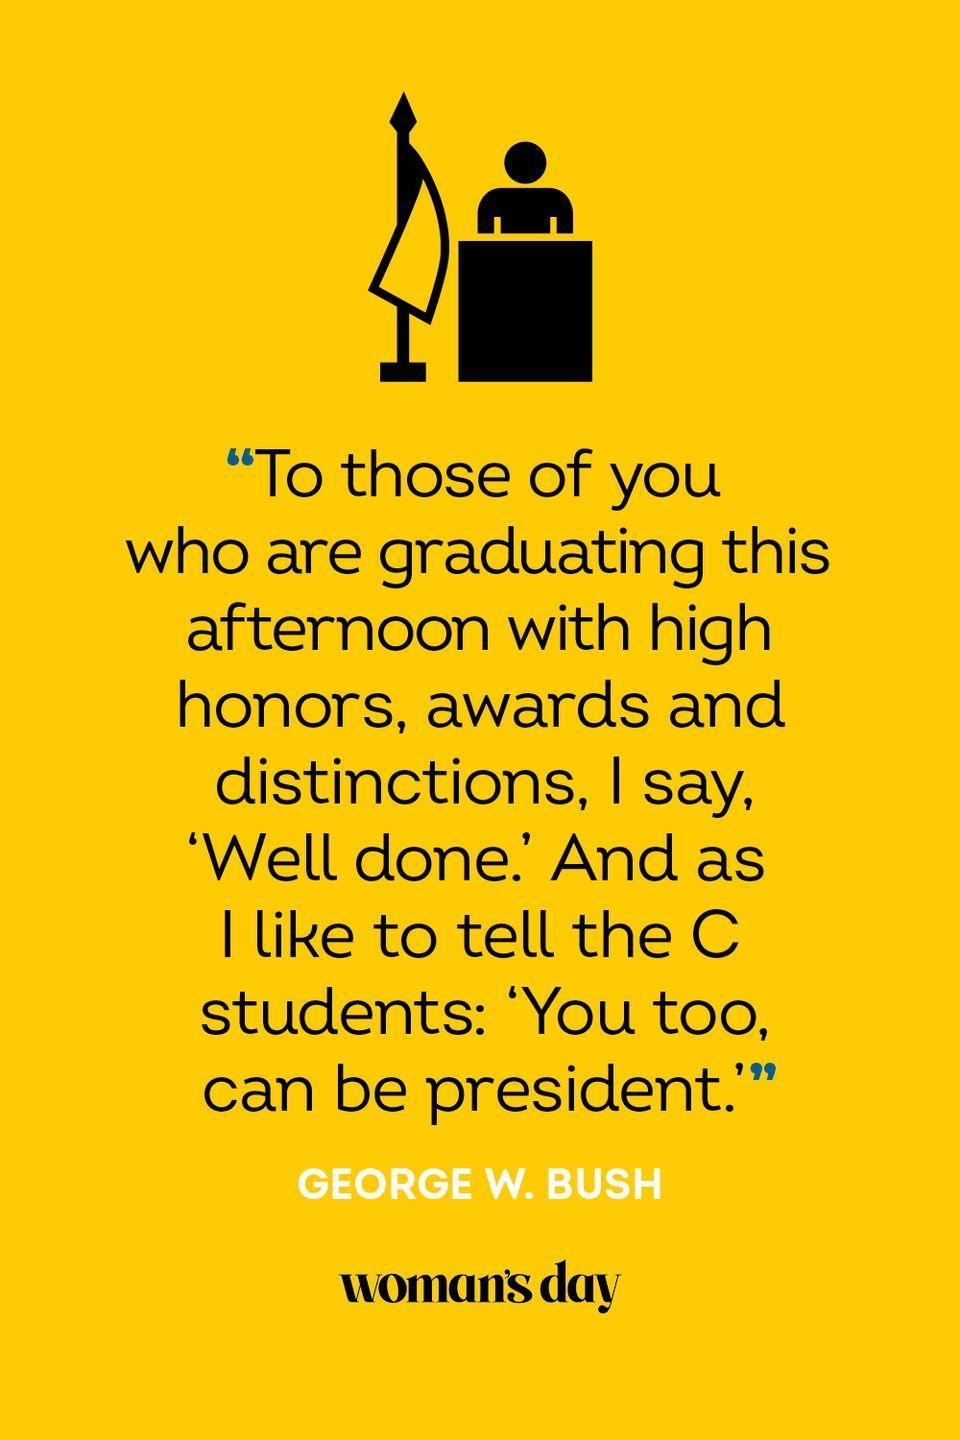 """<p>""""To those of you who are graduating this afternoon with high honors, awards and distinctions, I say, 'Well done.' And as I like to tell the C students: 'You too, can be president.'""""</p>"""